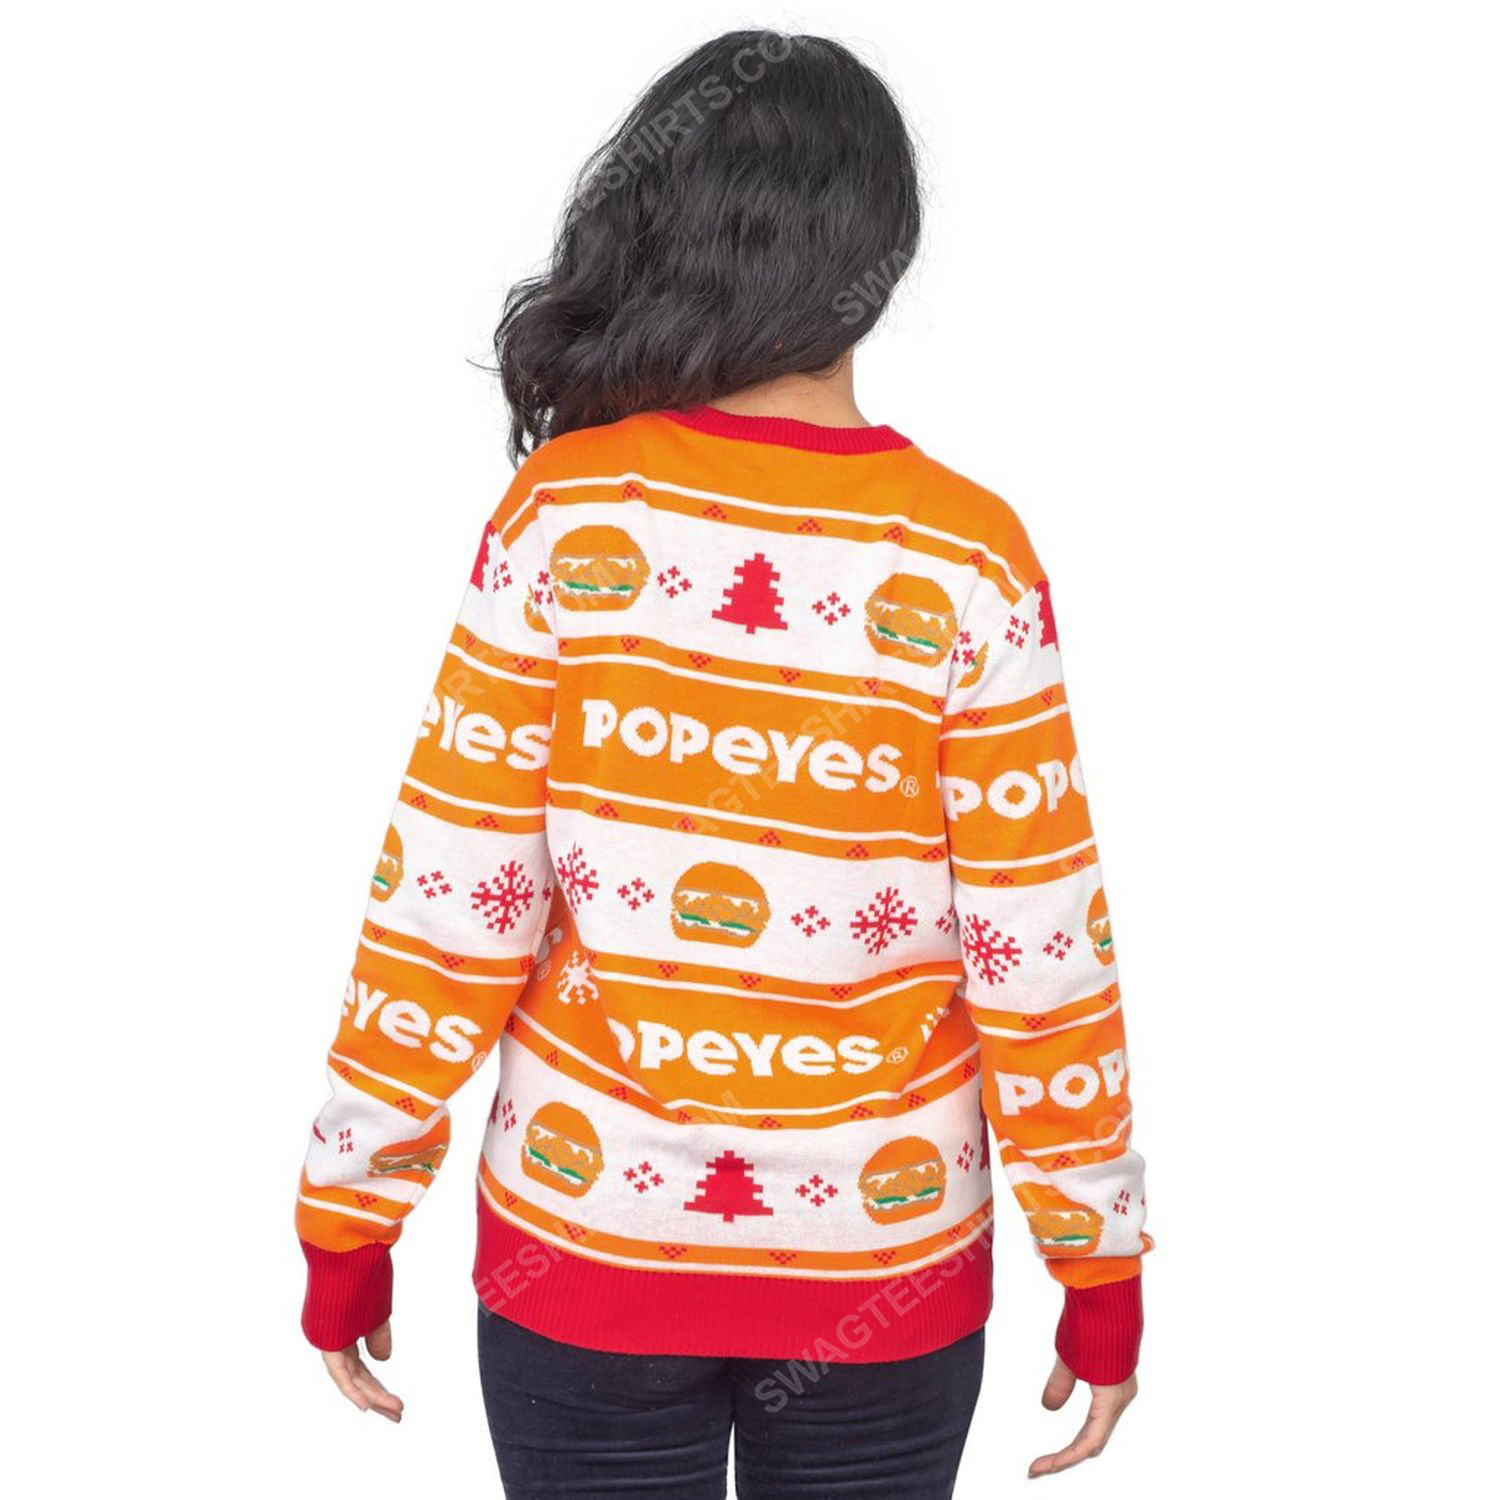 Popeyes burger full print ugly christmas sweater 5